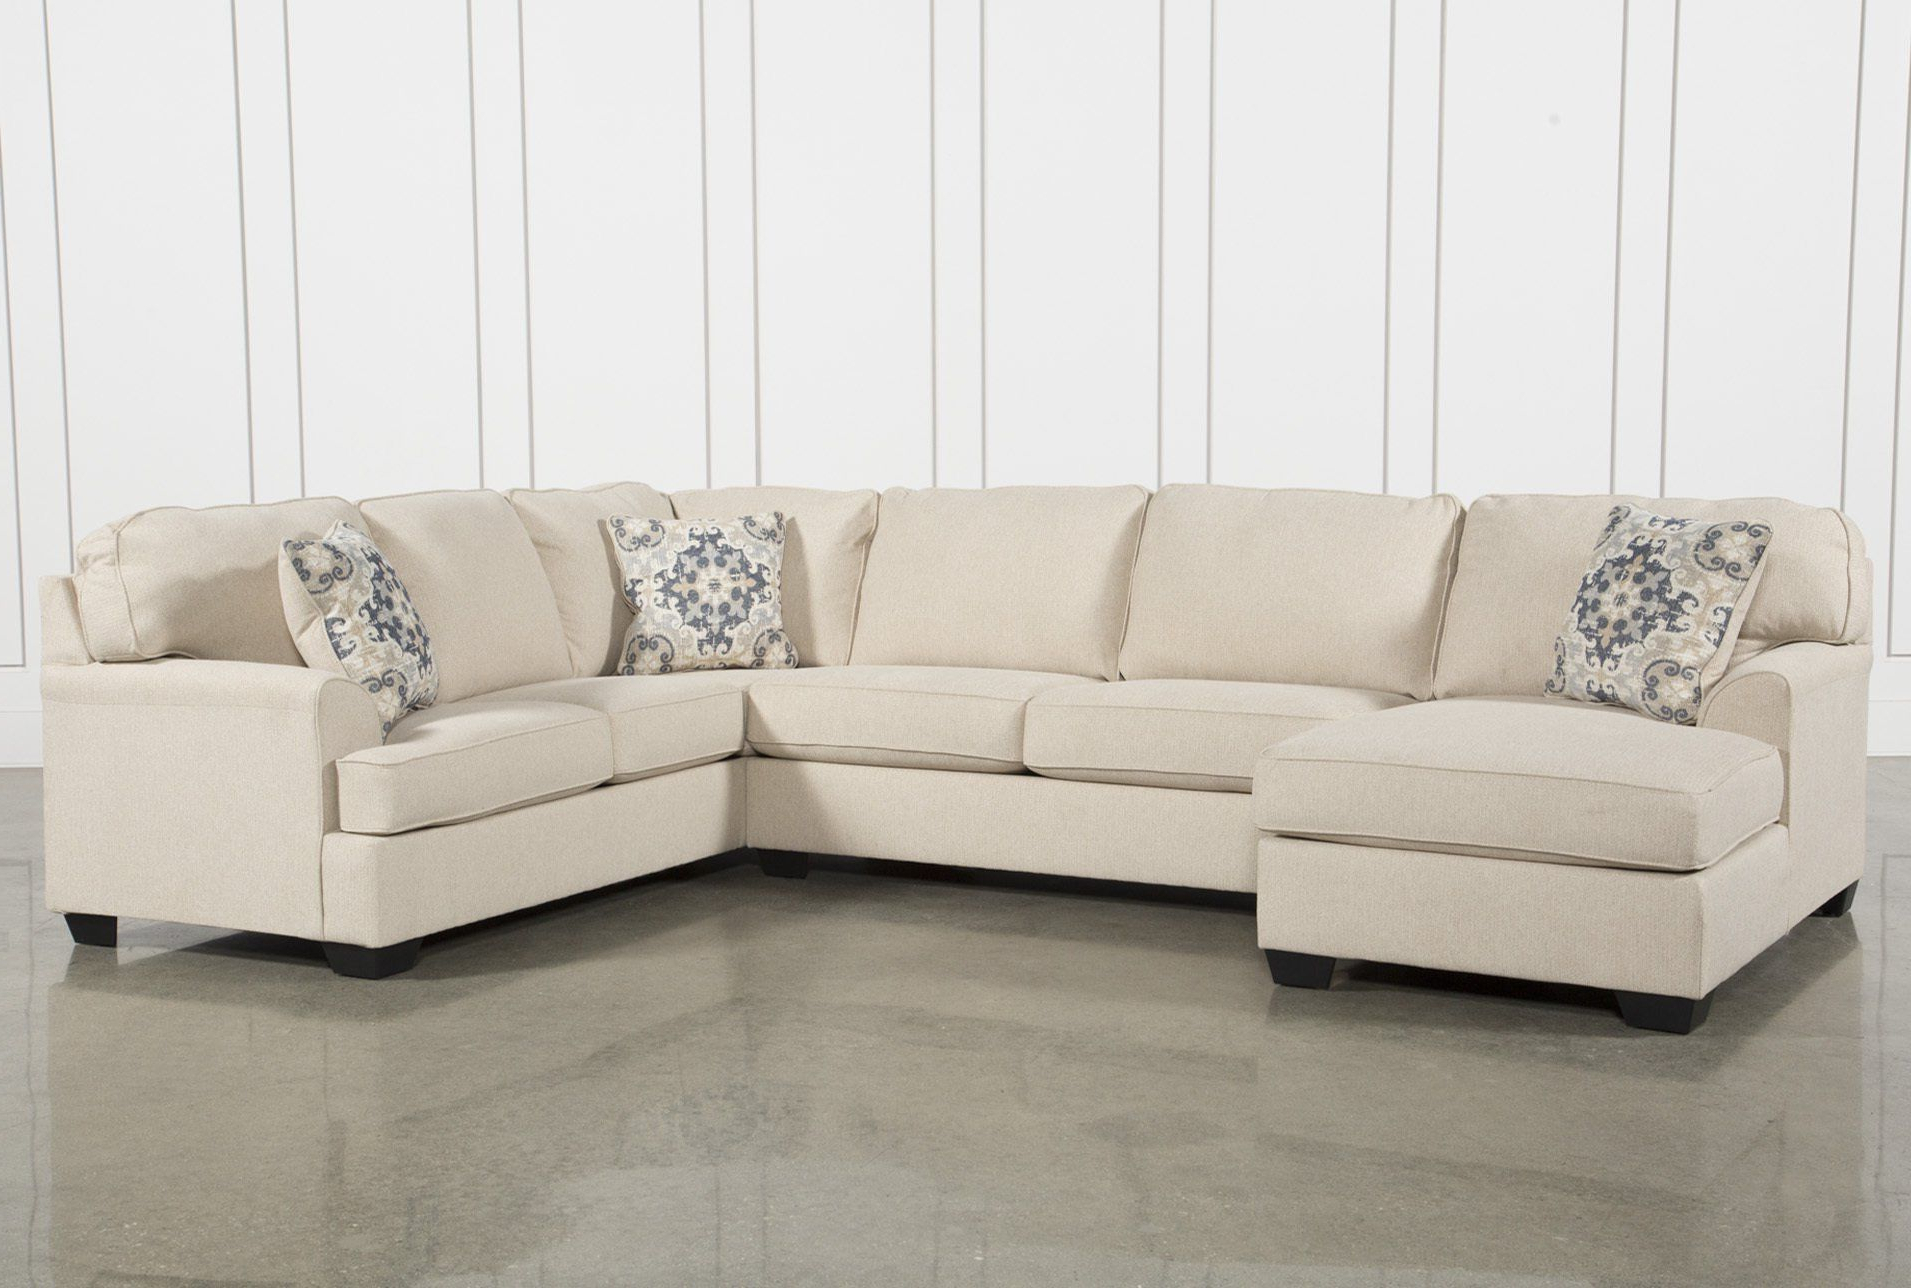 Malbry Point 3 Piece Sectional W/laf Chaise (View 8 of 20)